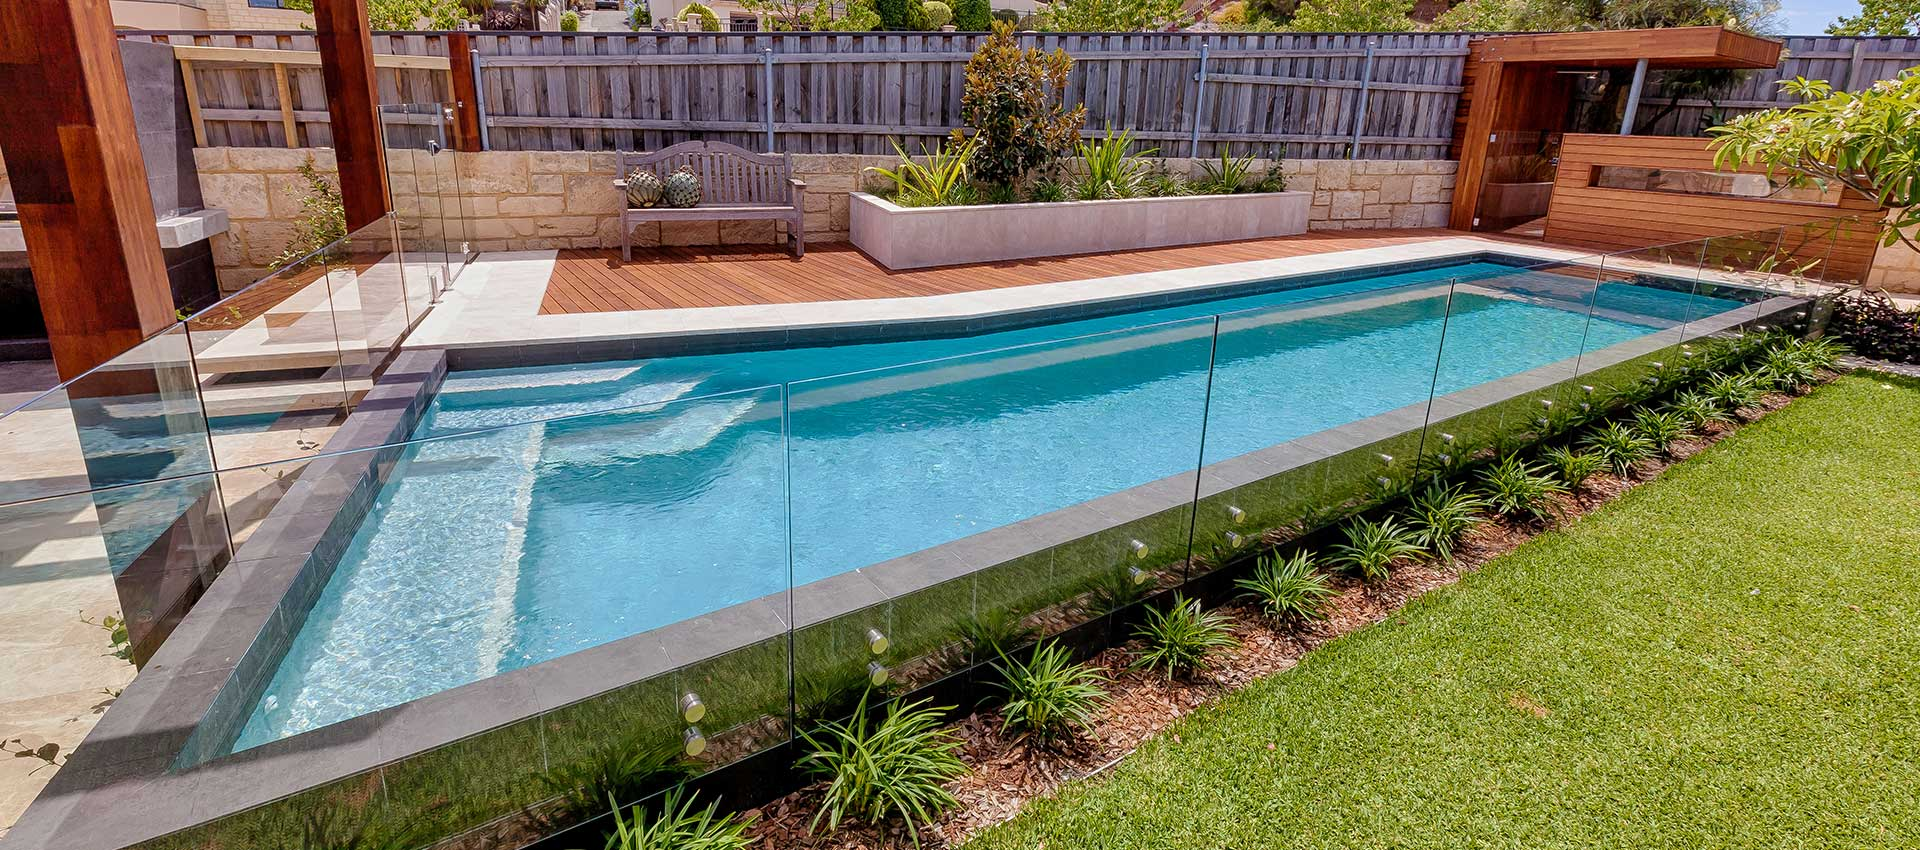 Coastline pools the hunters award swimming pool builders Fibreglass pools vs concrete pools